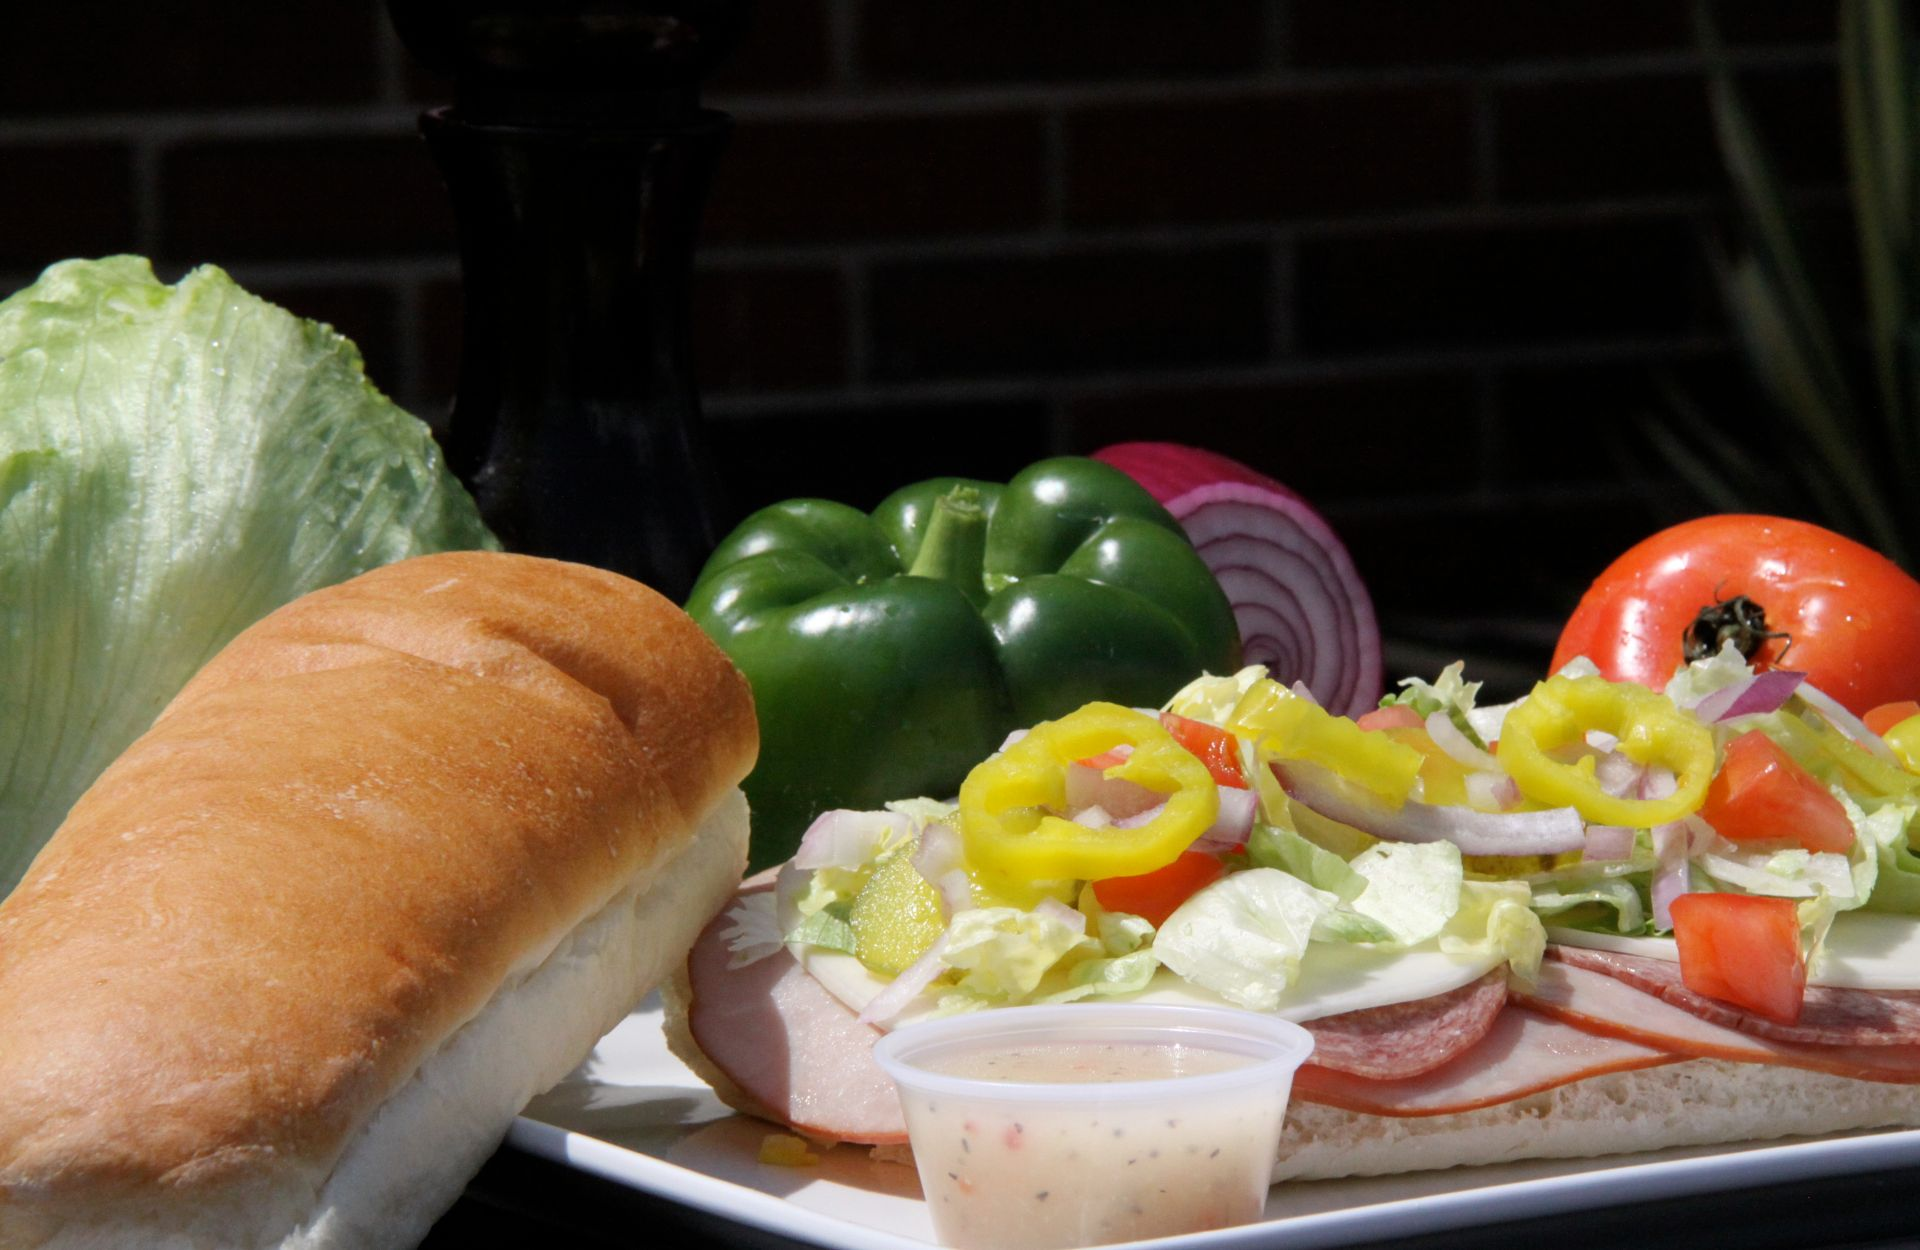 Italian sub with lettuce, tomato and banana peppers with Italian dressing, green pepper and red onion on the side